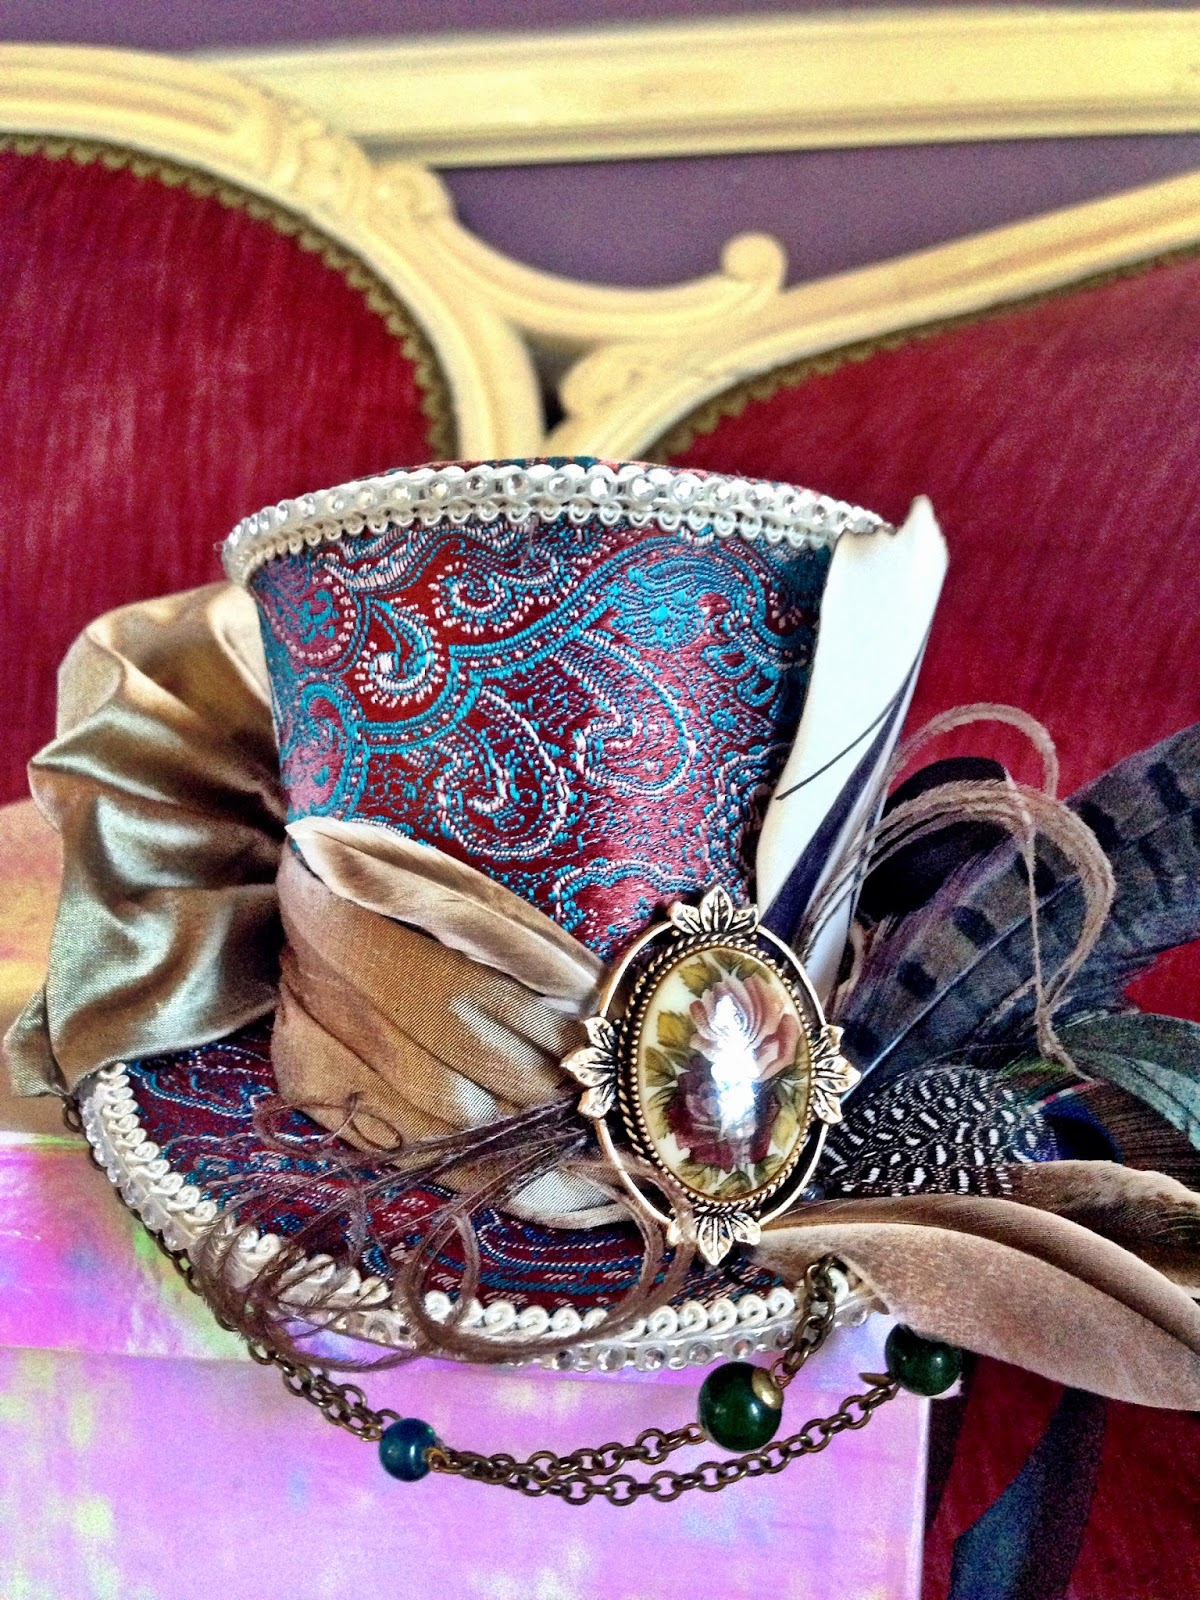 https://www.etsy.com/listing/220682249/steampunk-mad-hatter-mini-top-hat?ref=shop_home_active_2